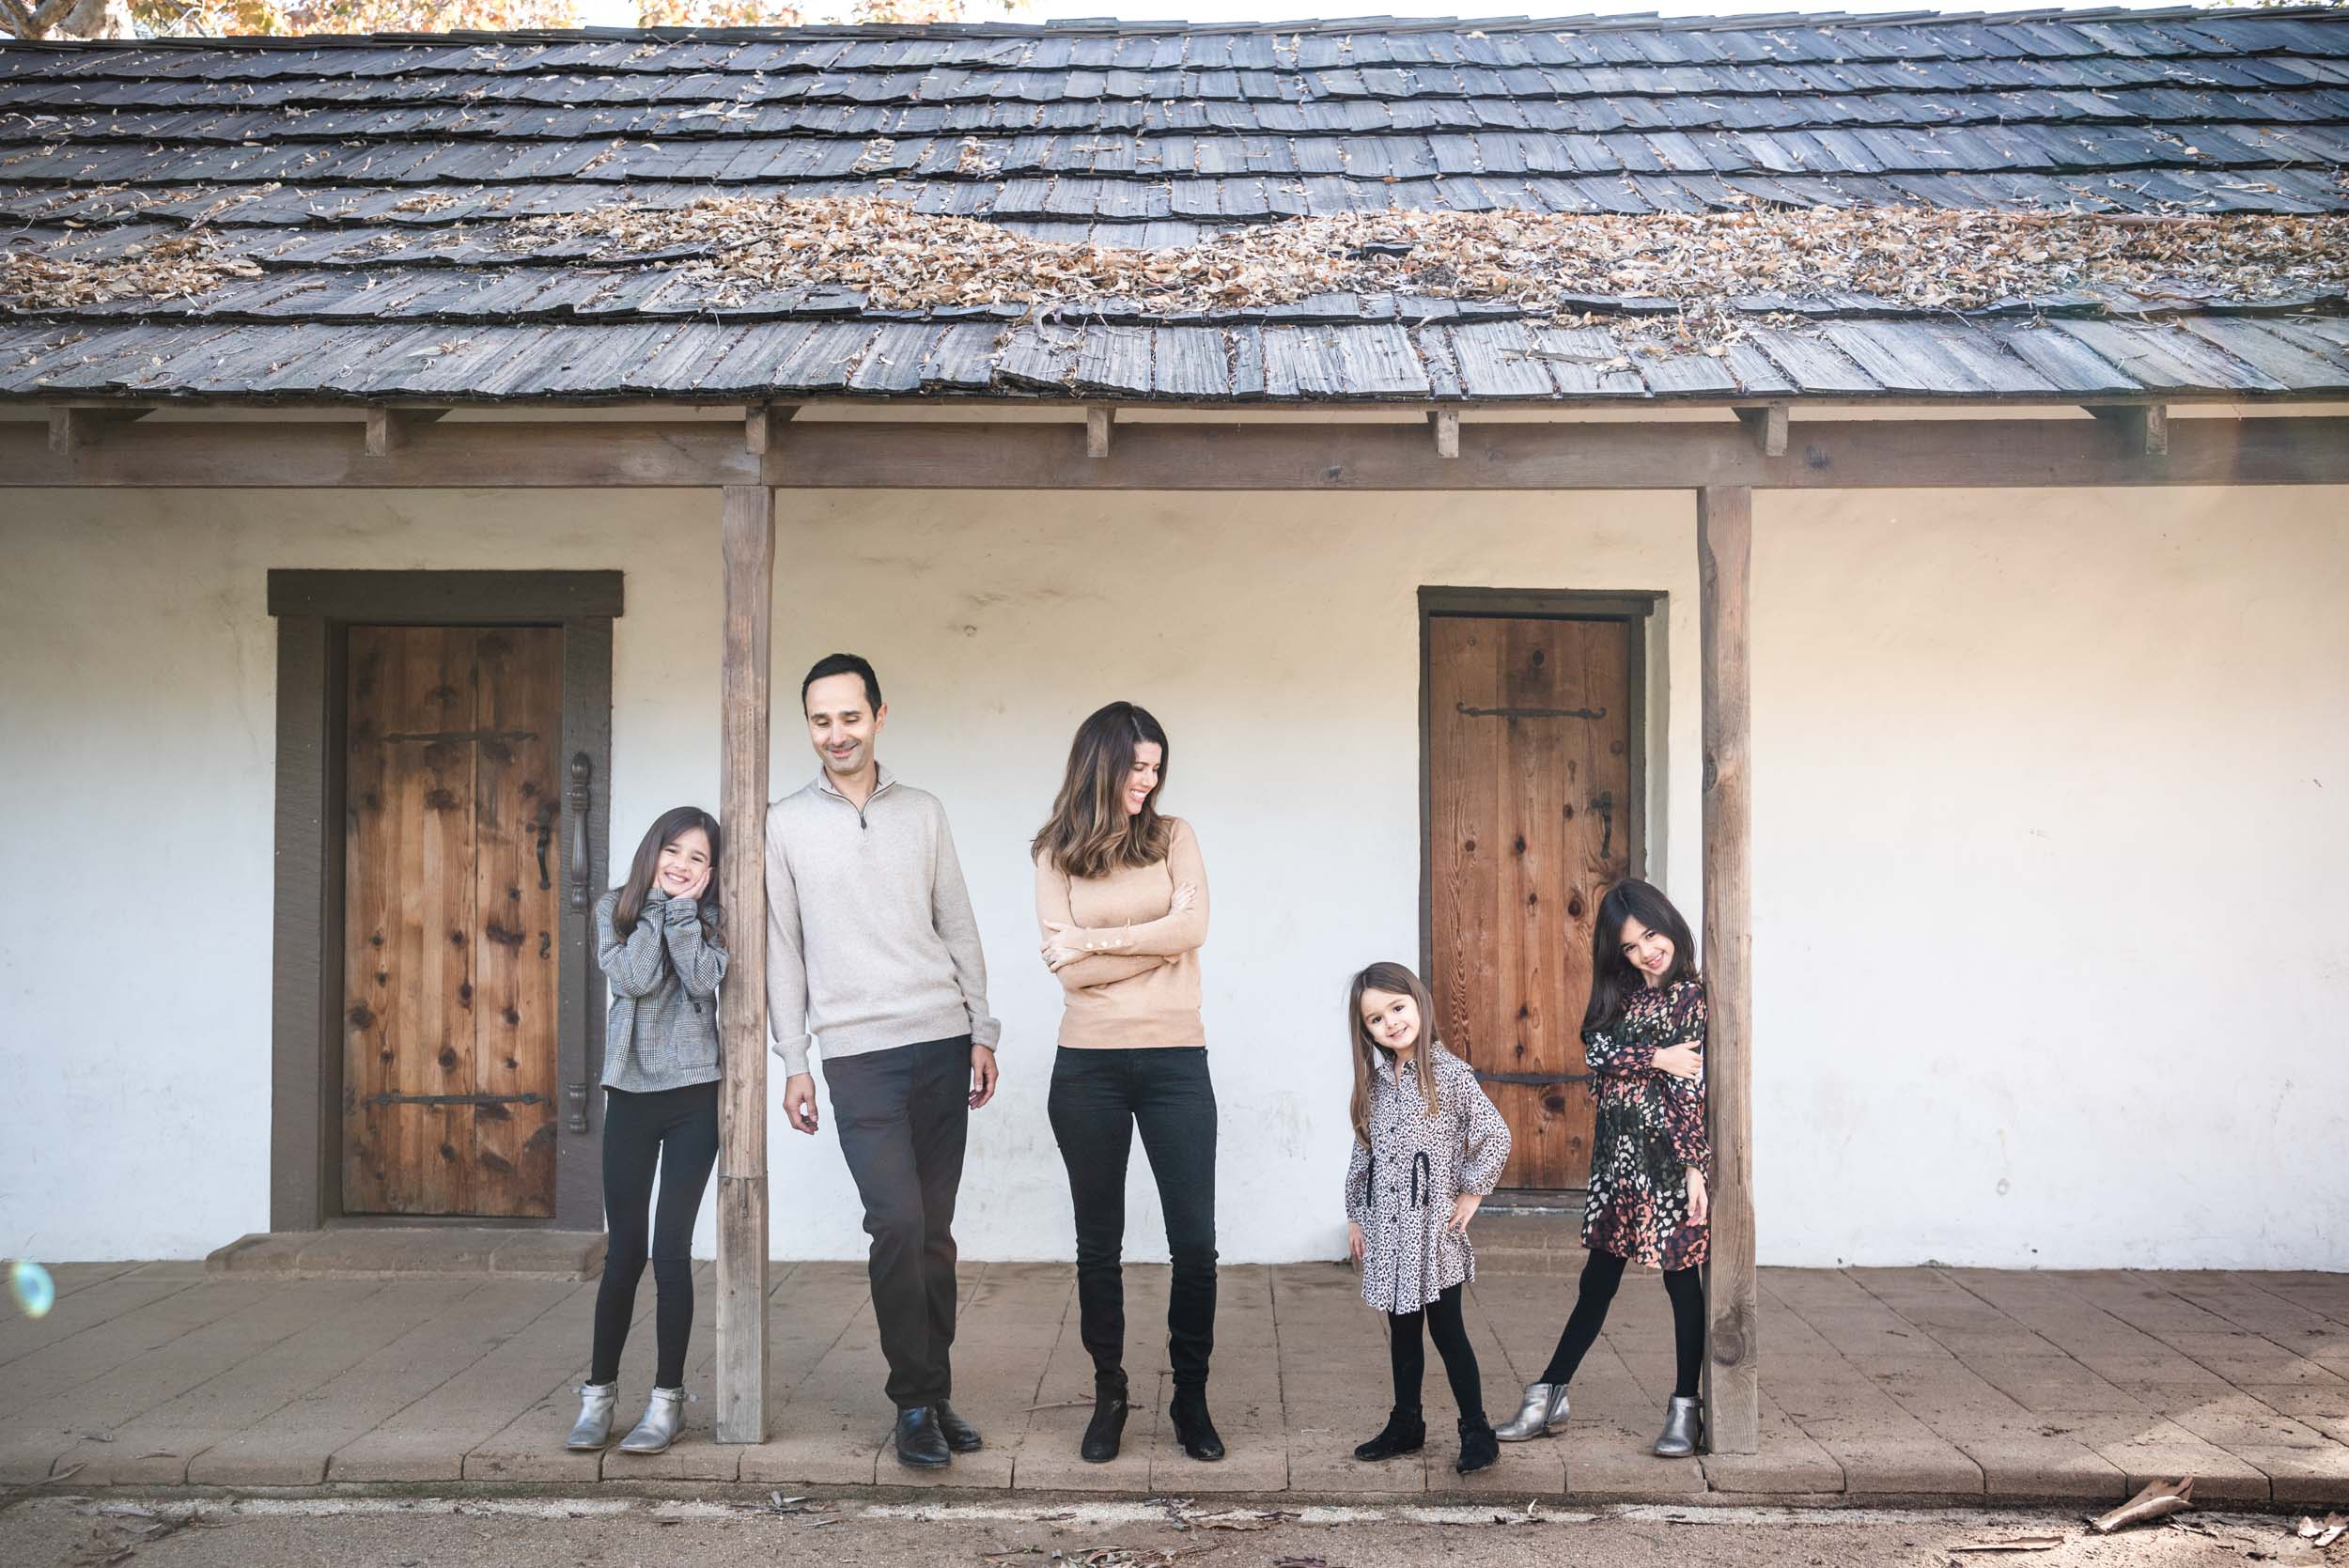 Lisa Hu Chen orange county family photographer family smiling in front of a white adobe house in san juan capistrano